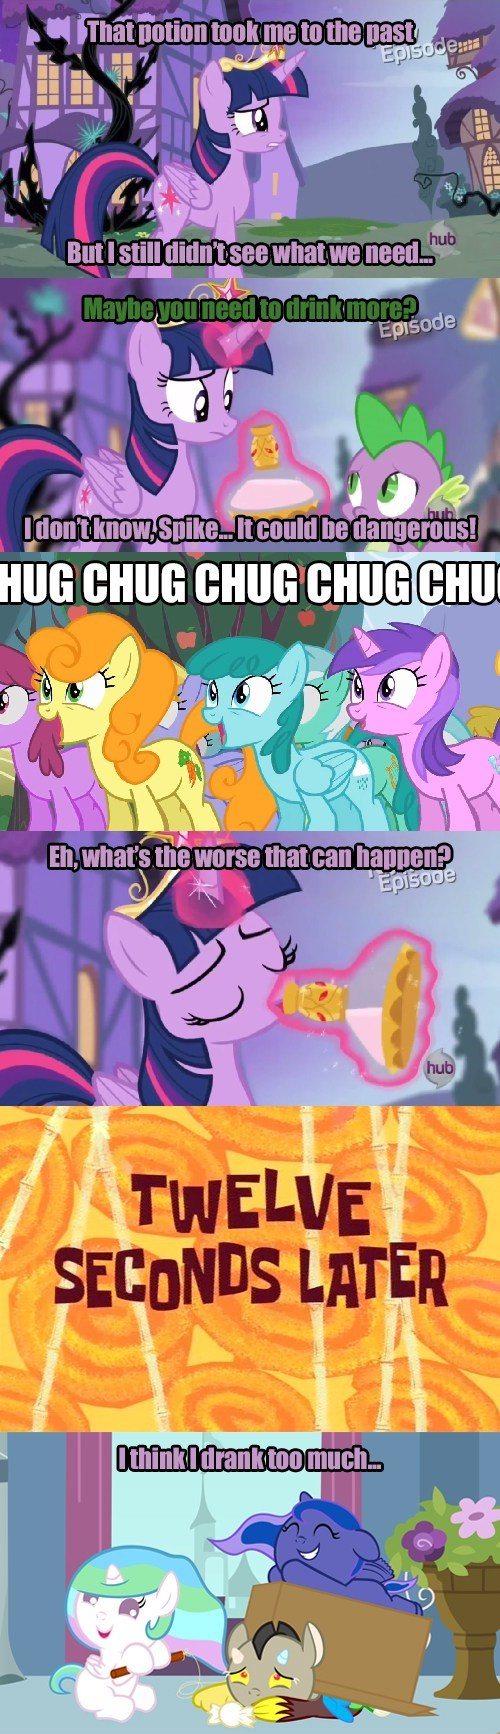 chug chug chug,twilight sparkle,spike